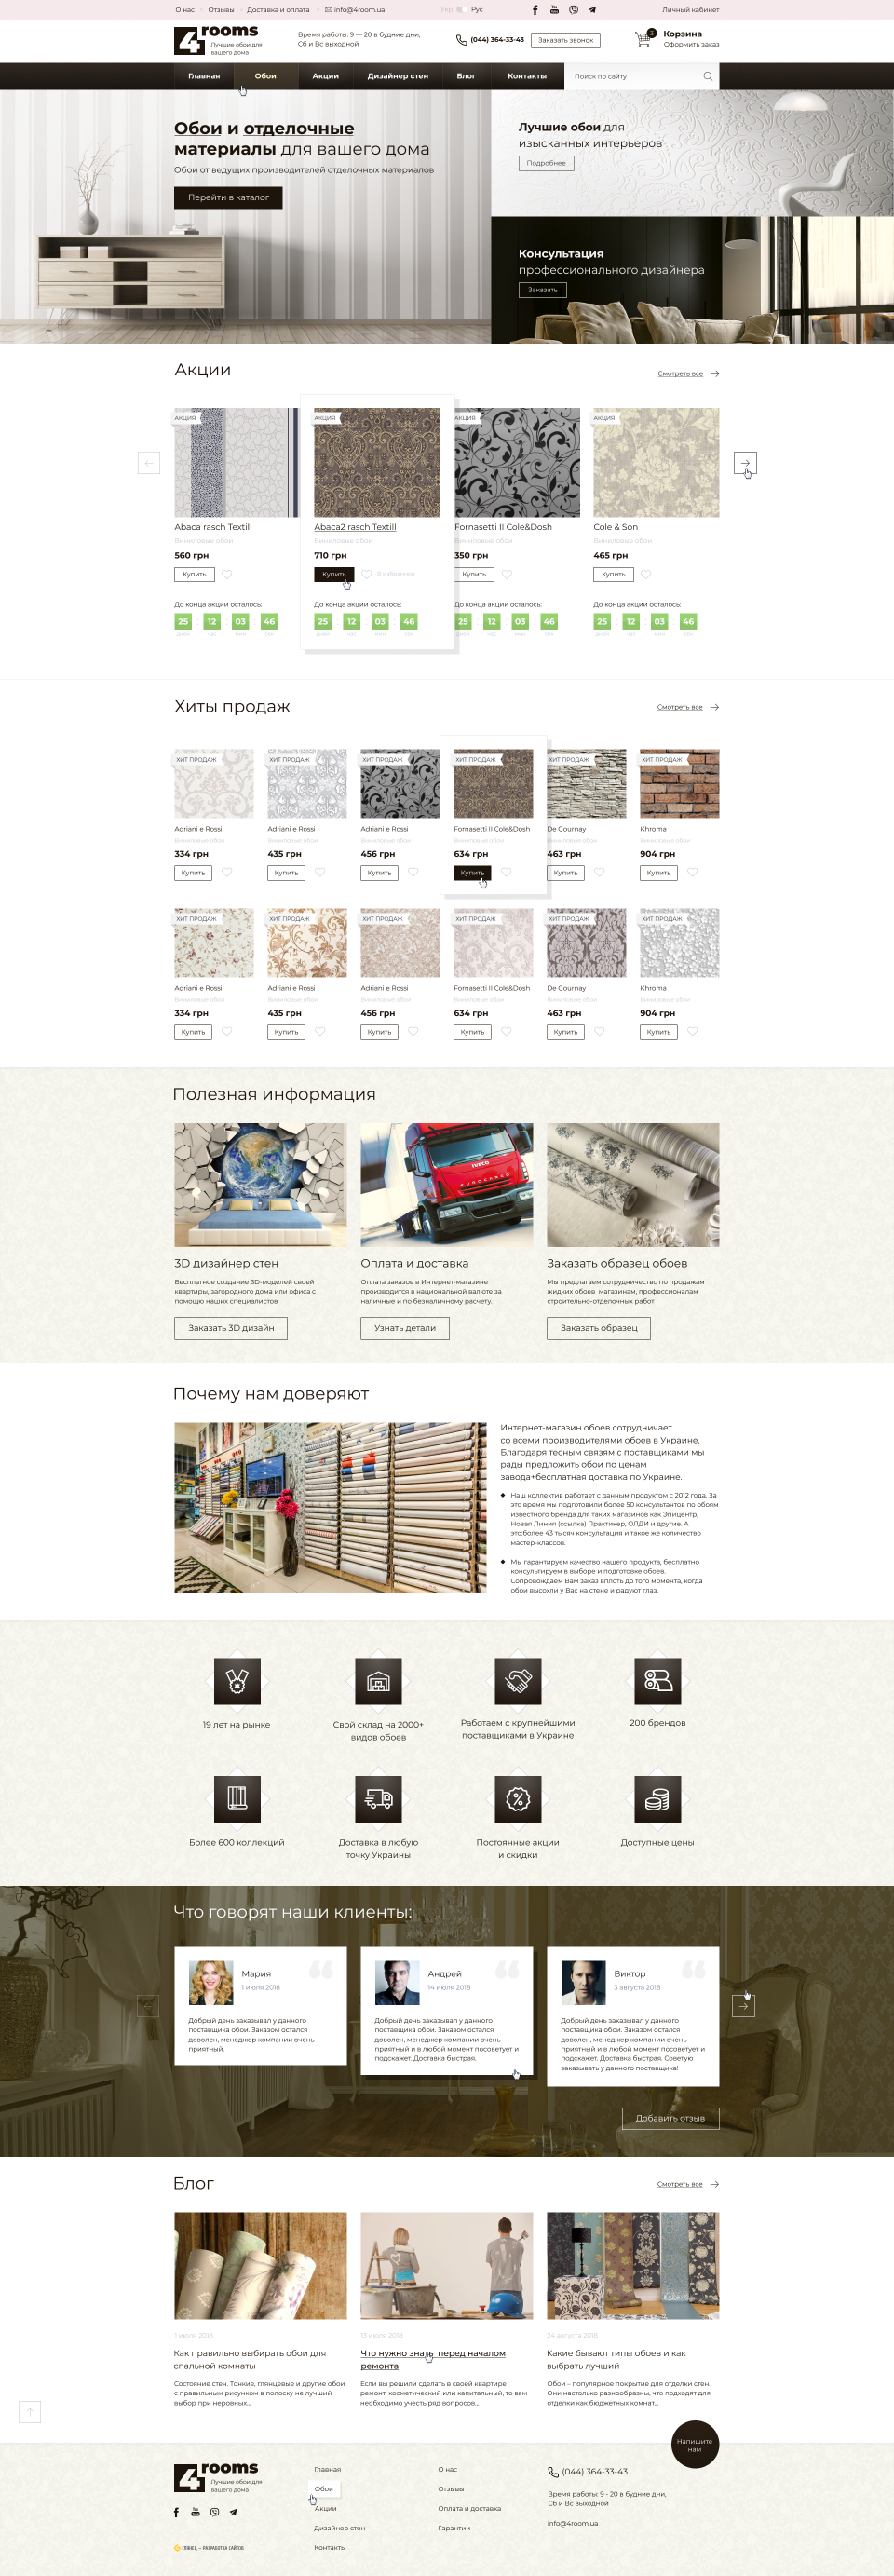 home page design — Online store 4rooms_0